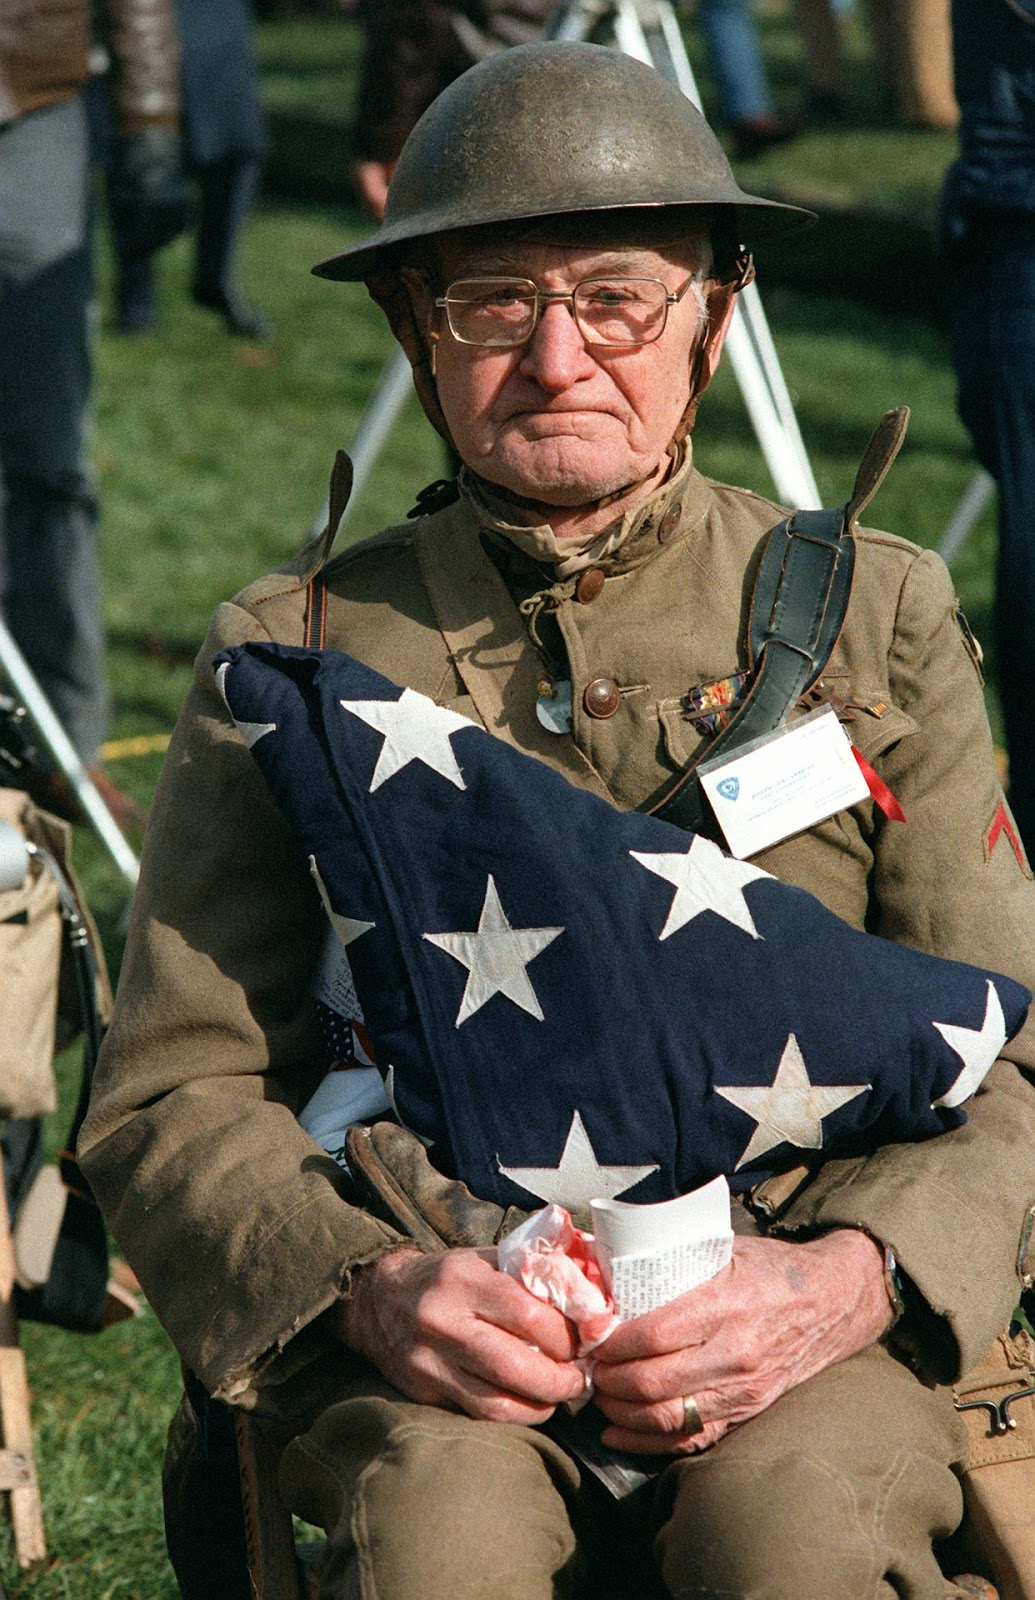 40 Amazing Historical Pictures - Joseph Ambrose, an 86-year-old World War I veteran, watches the dedication day parade for the Vietnam Veterans Memorial. He is holding the flag that covered the casket of his son, who was killed in the Korean War, 11/13/1982